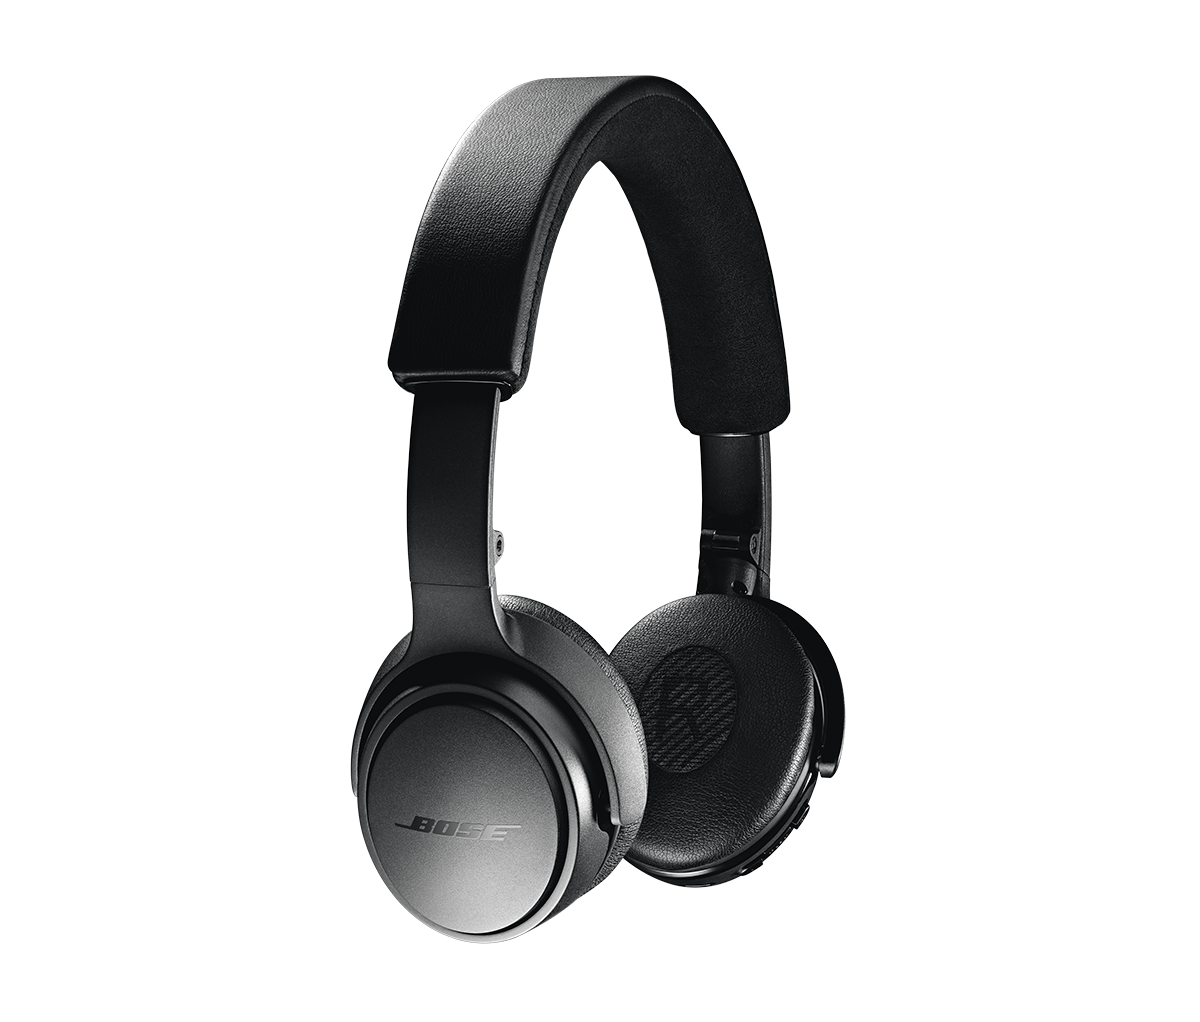 Bose_onear_wireless_headphones